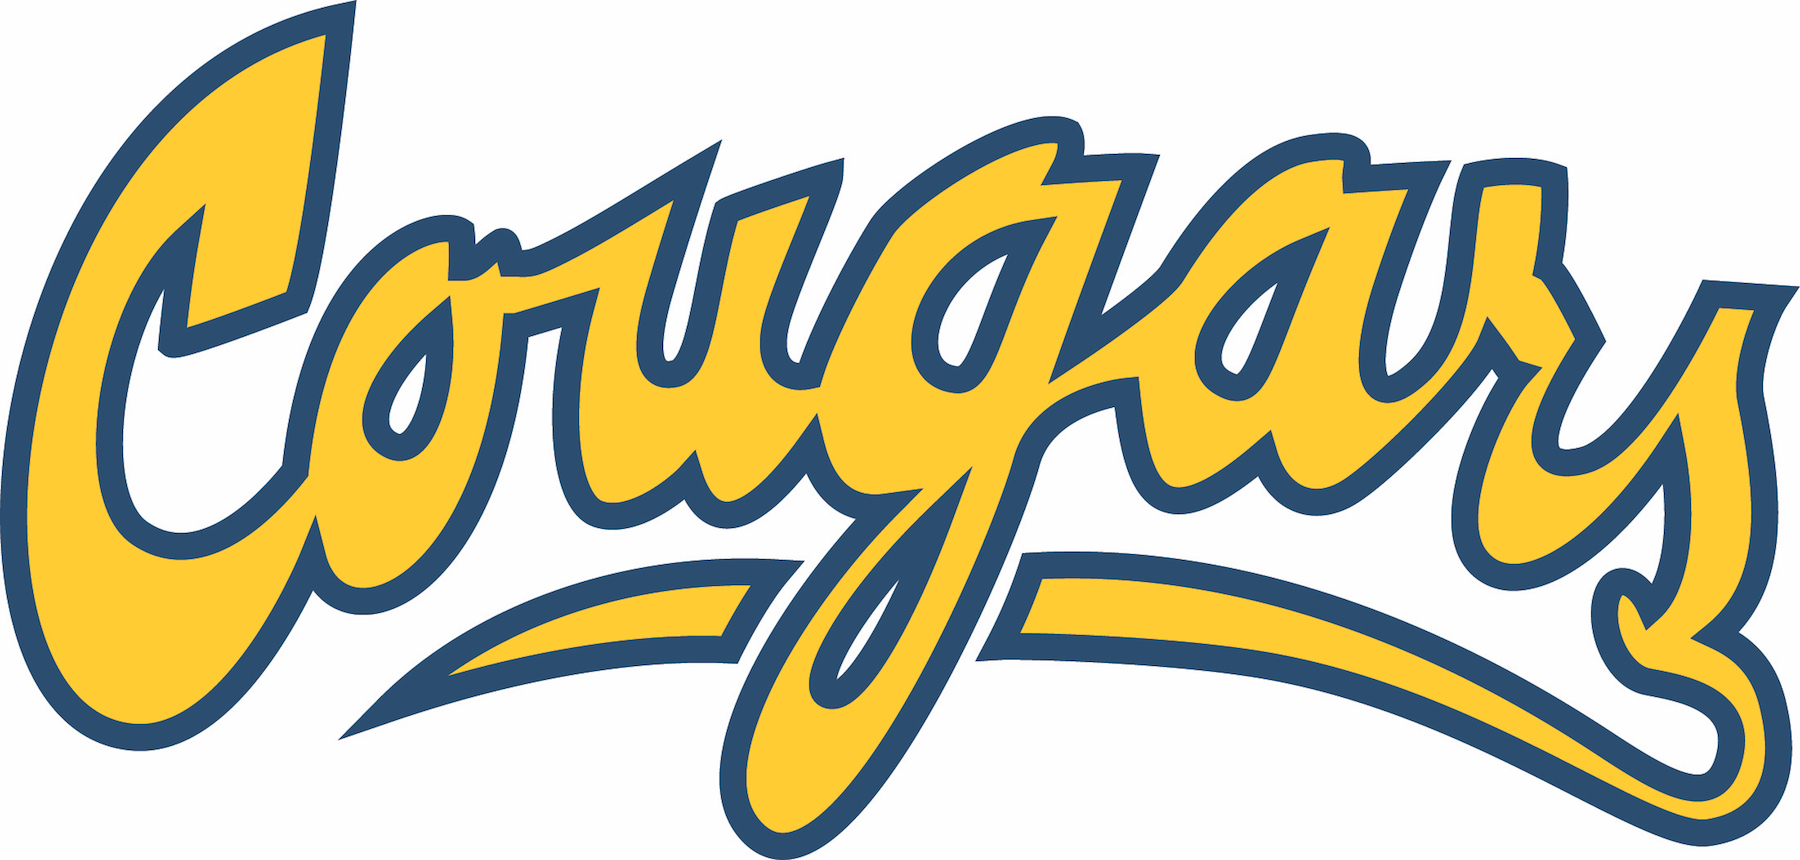 College of the Canyons Cougars logo.